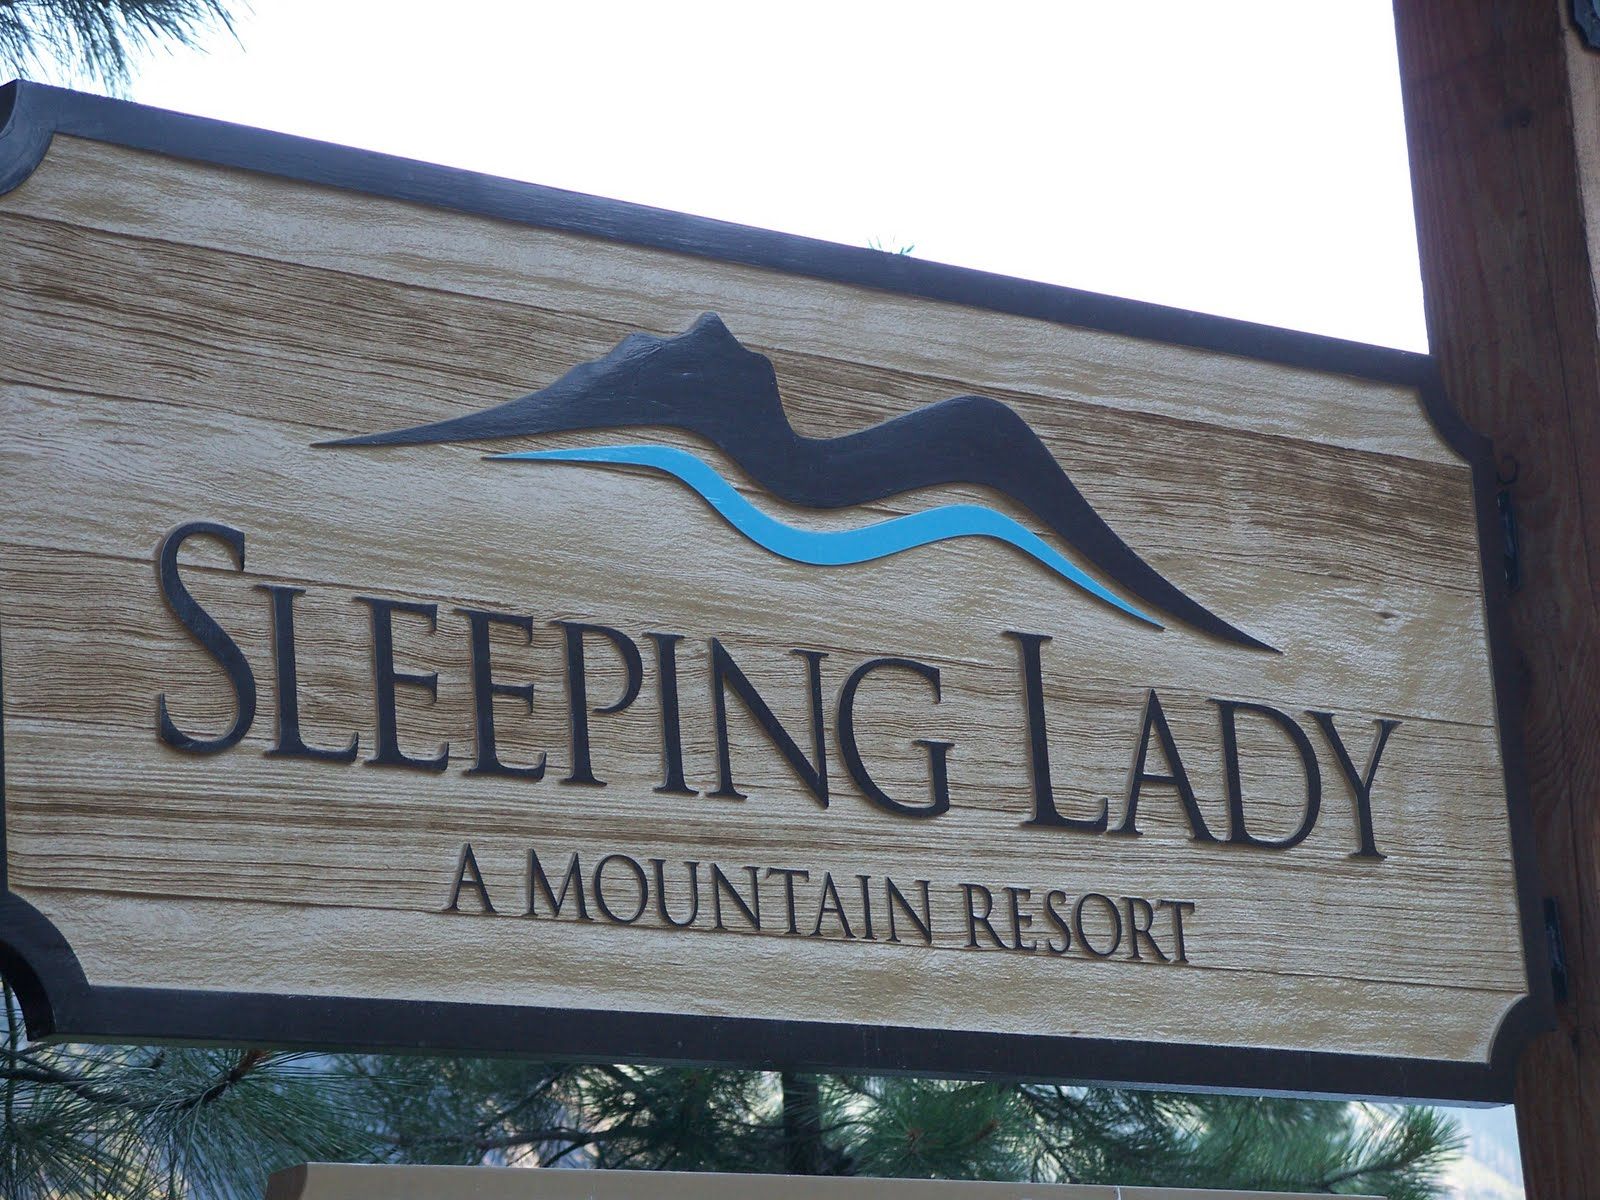 Sleepingladysign.jpg